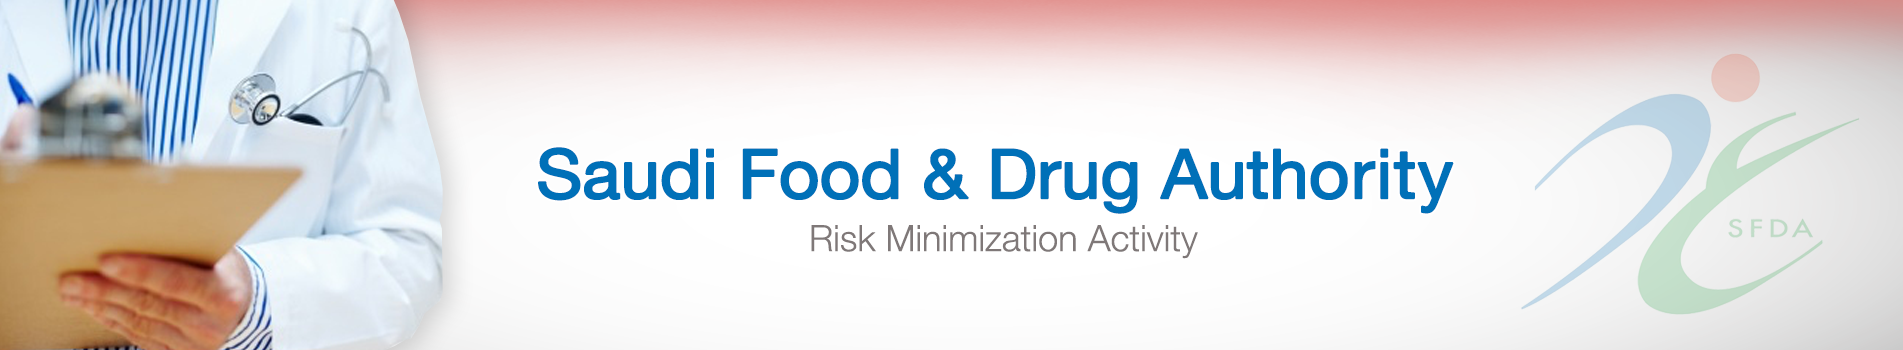 Drug Safety | King Faisal Specialist Hospital & Research Centre